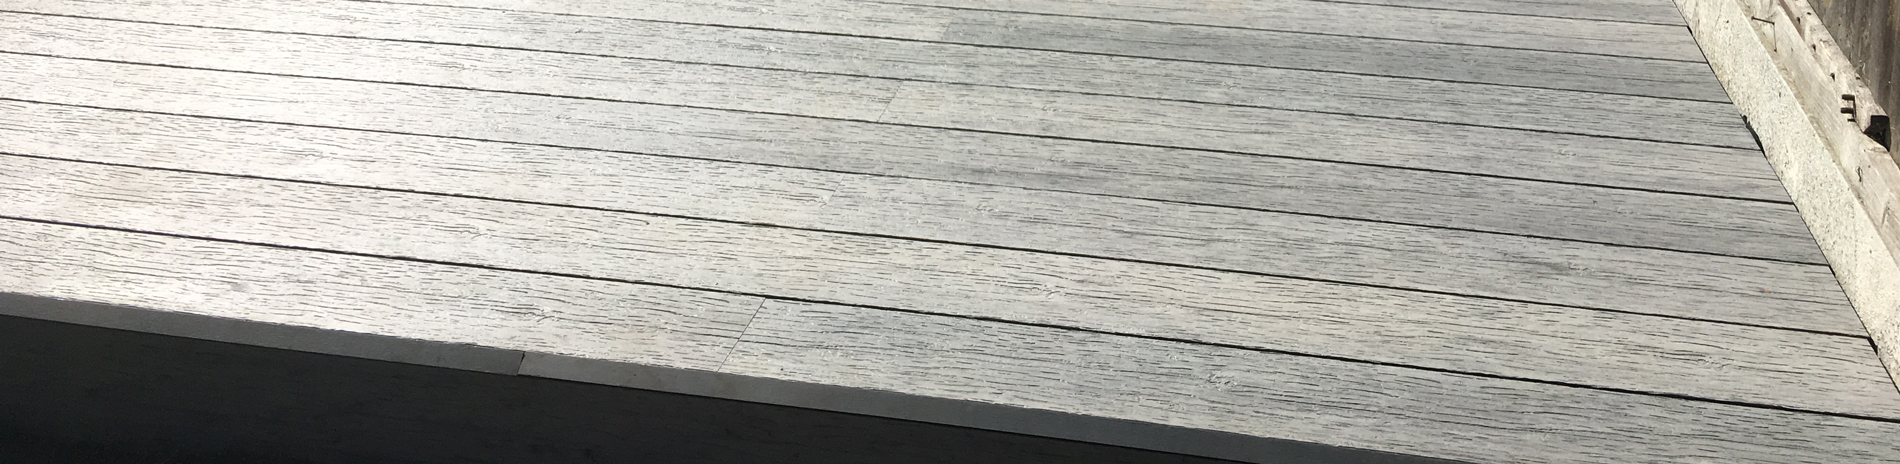 Vintage composite decking heading 1